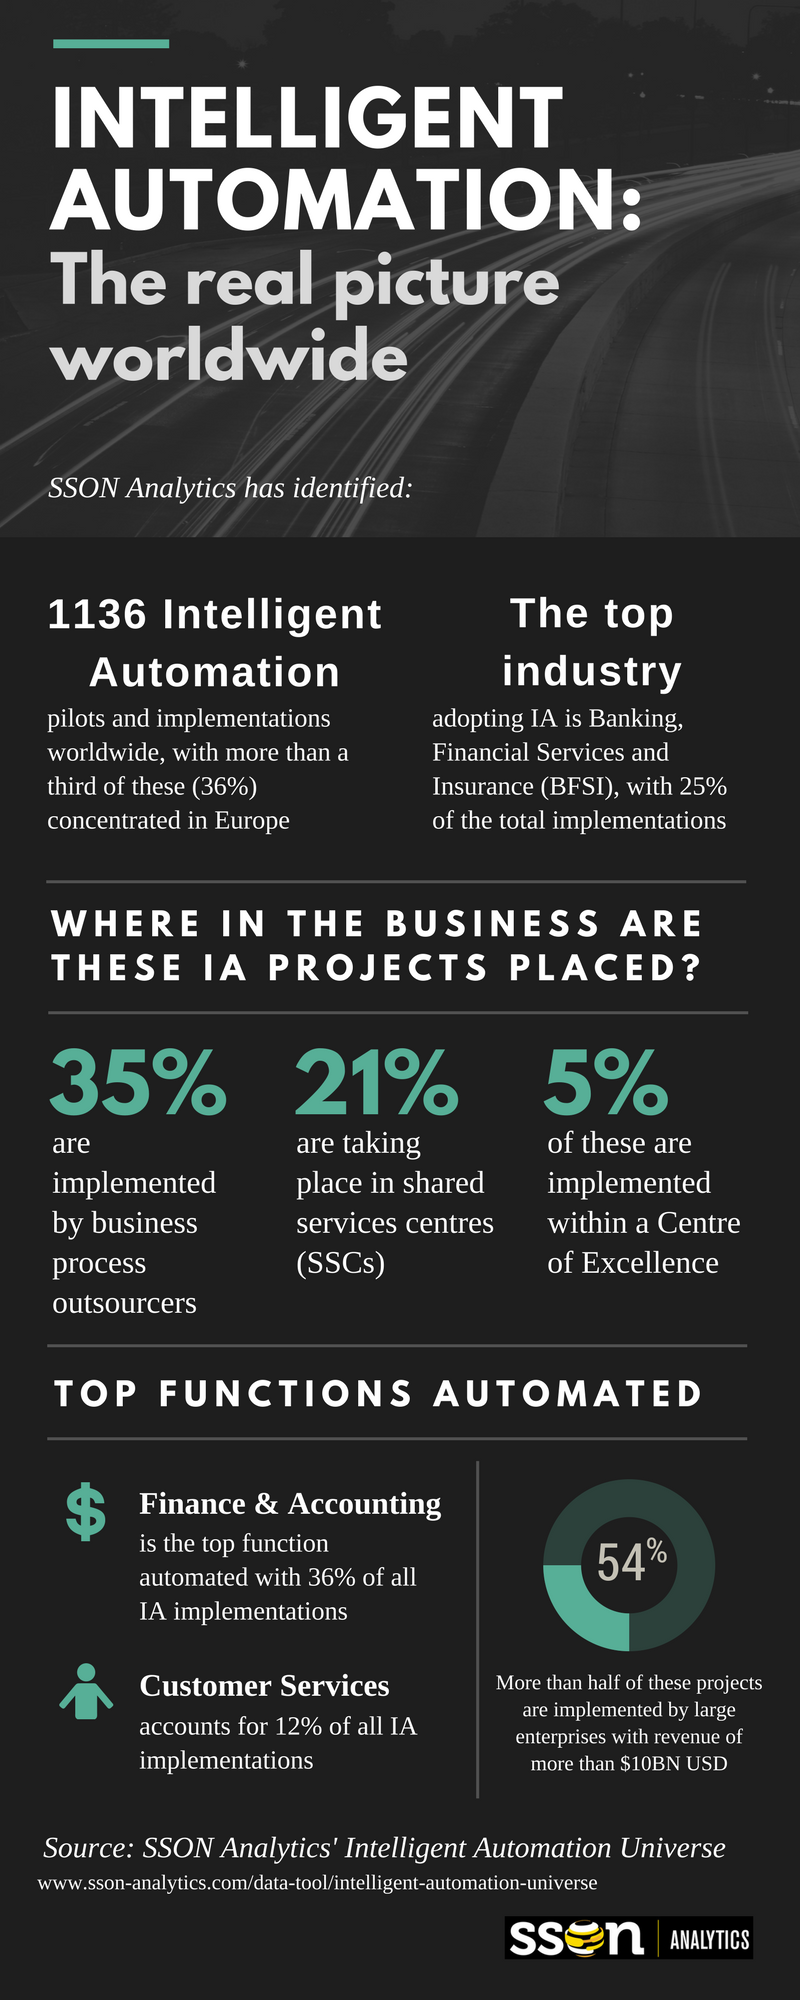 sson_analytics_intelligent_automation_universe_infograph